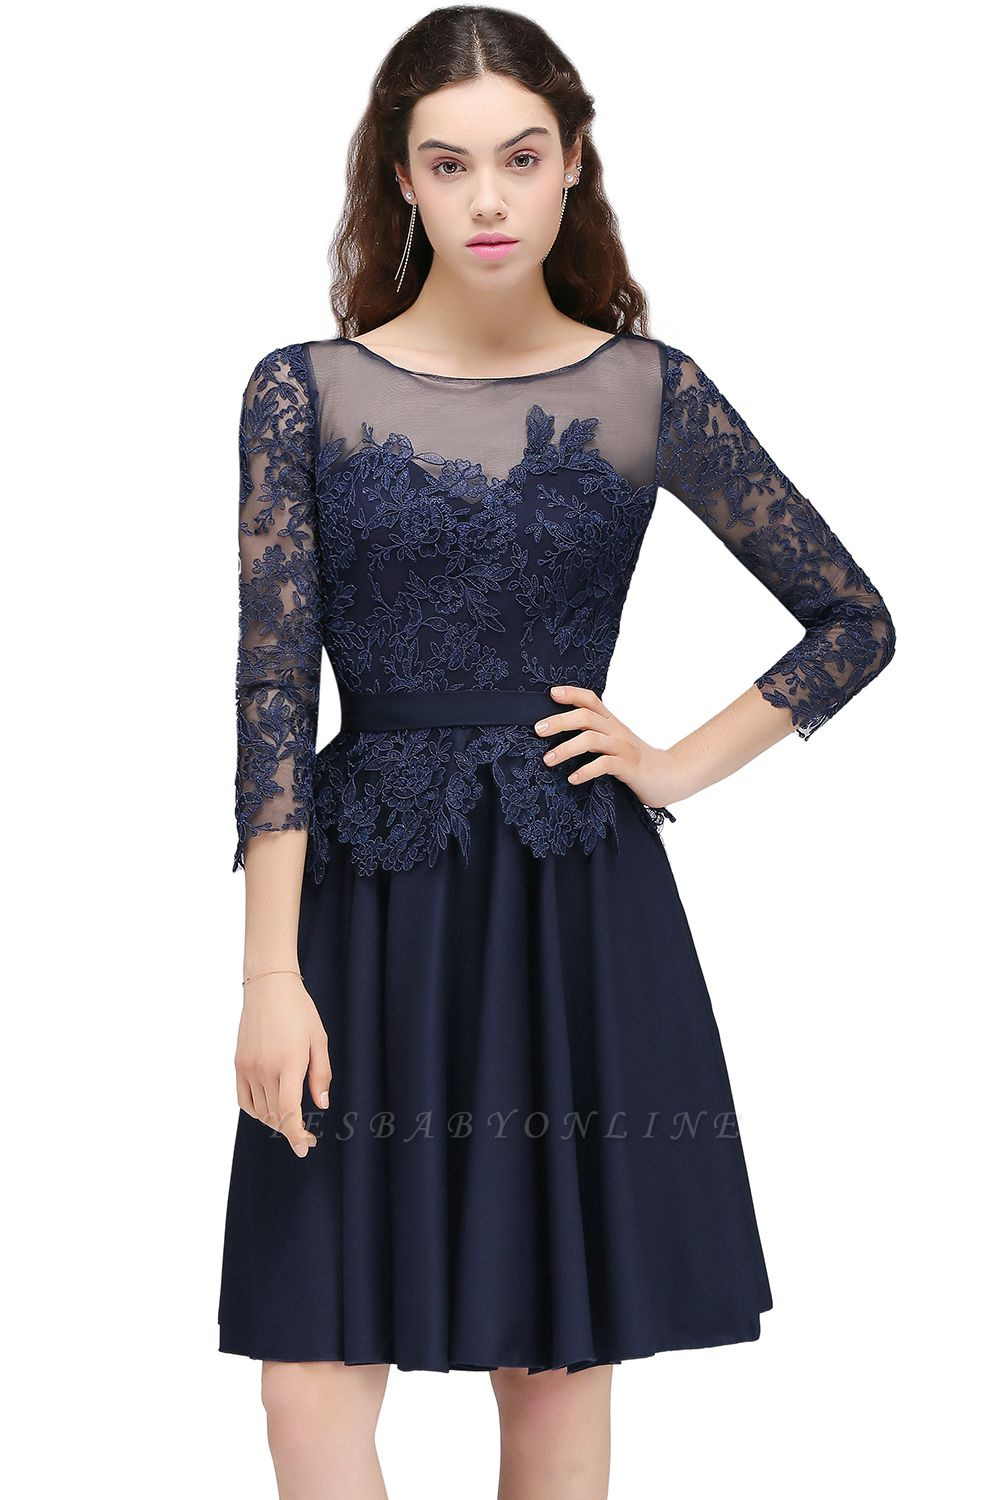 Cheap Dark Navy A-line Homecoming Dress in Stock